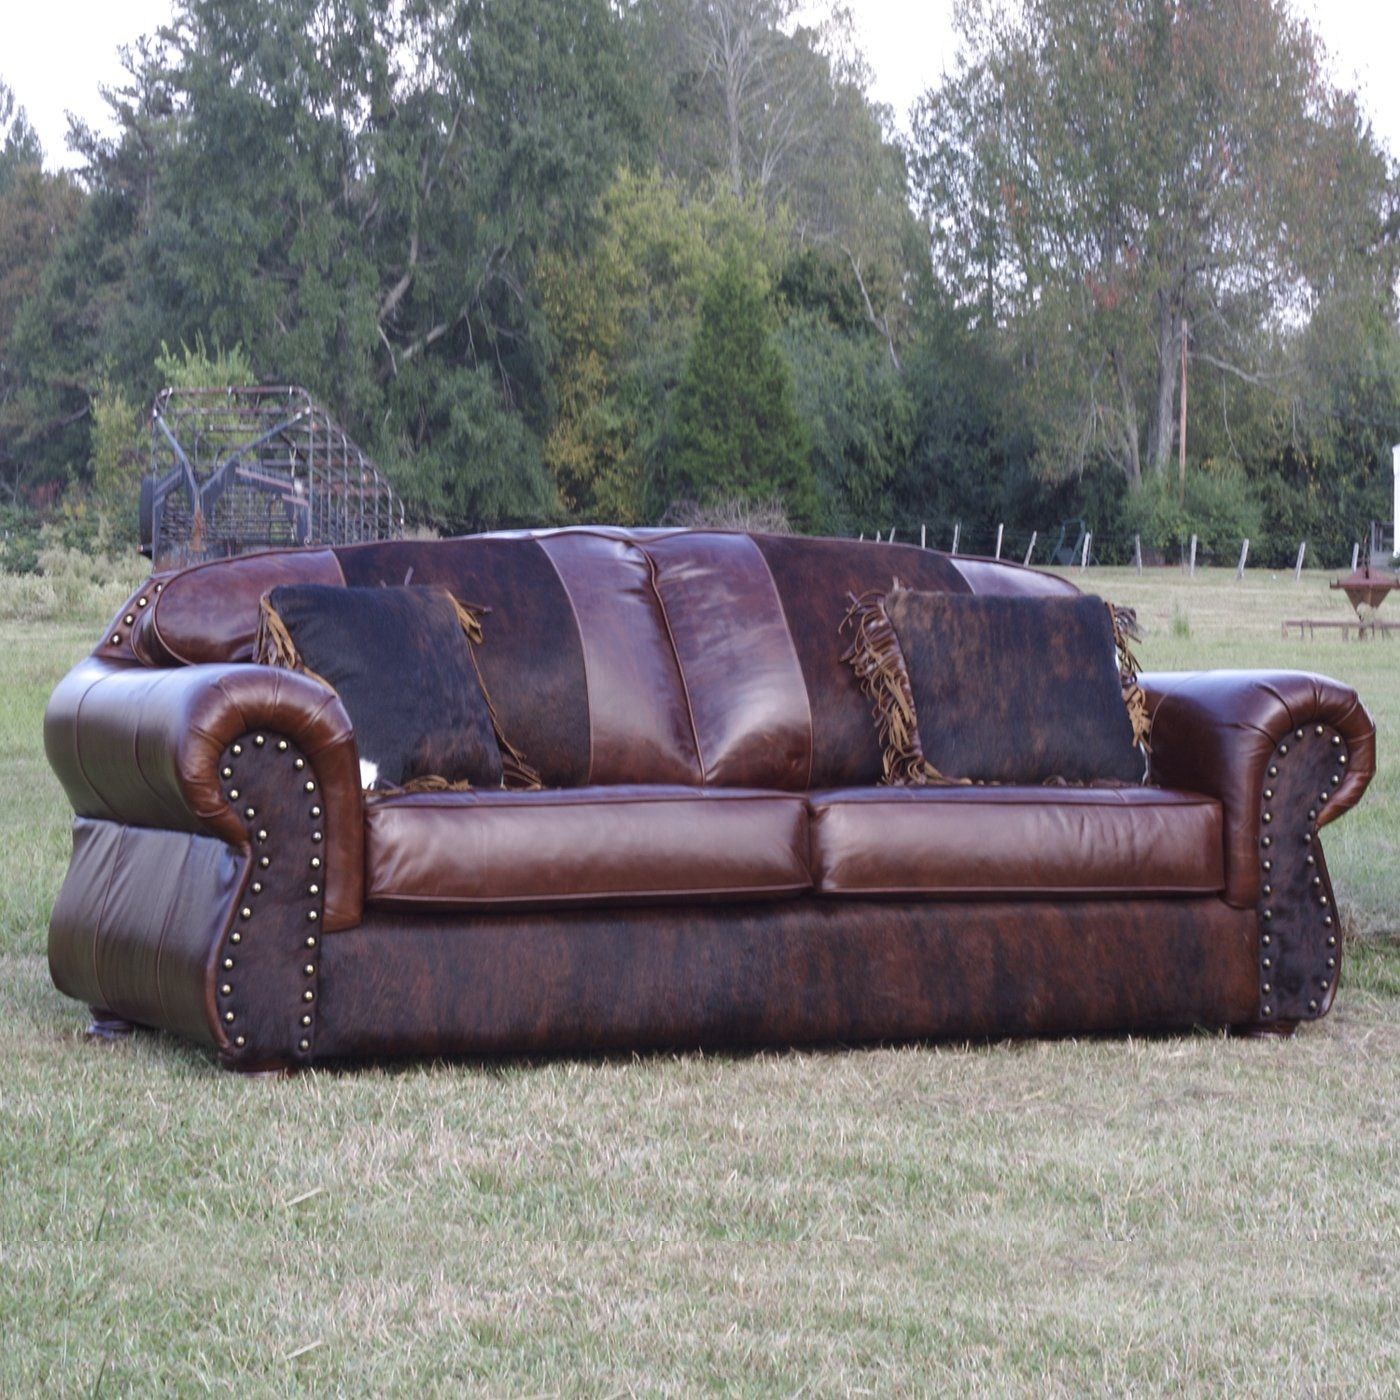 Country Road Furniture 1800S CHOCOLATE LEATHER Bunkhouse Sofa